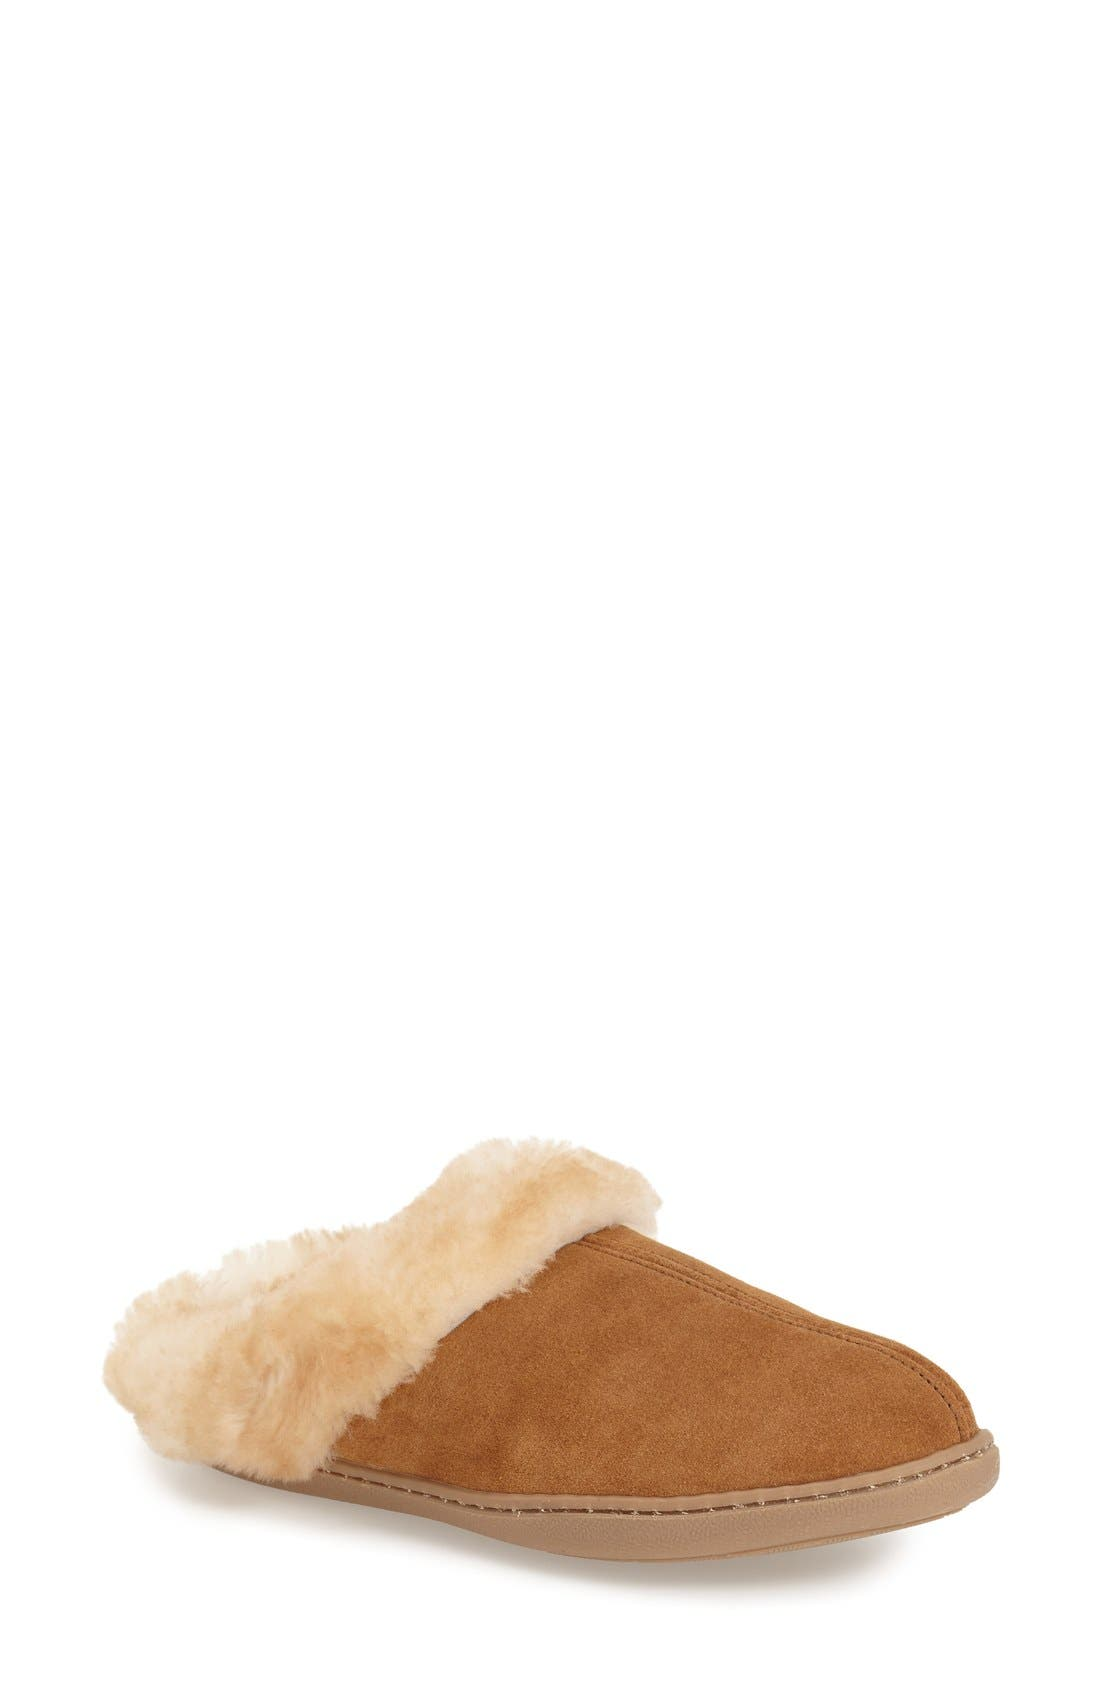 Sheepskin Mule Slipper,                         Main,                         color, Tan Suede